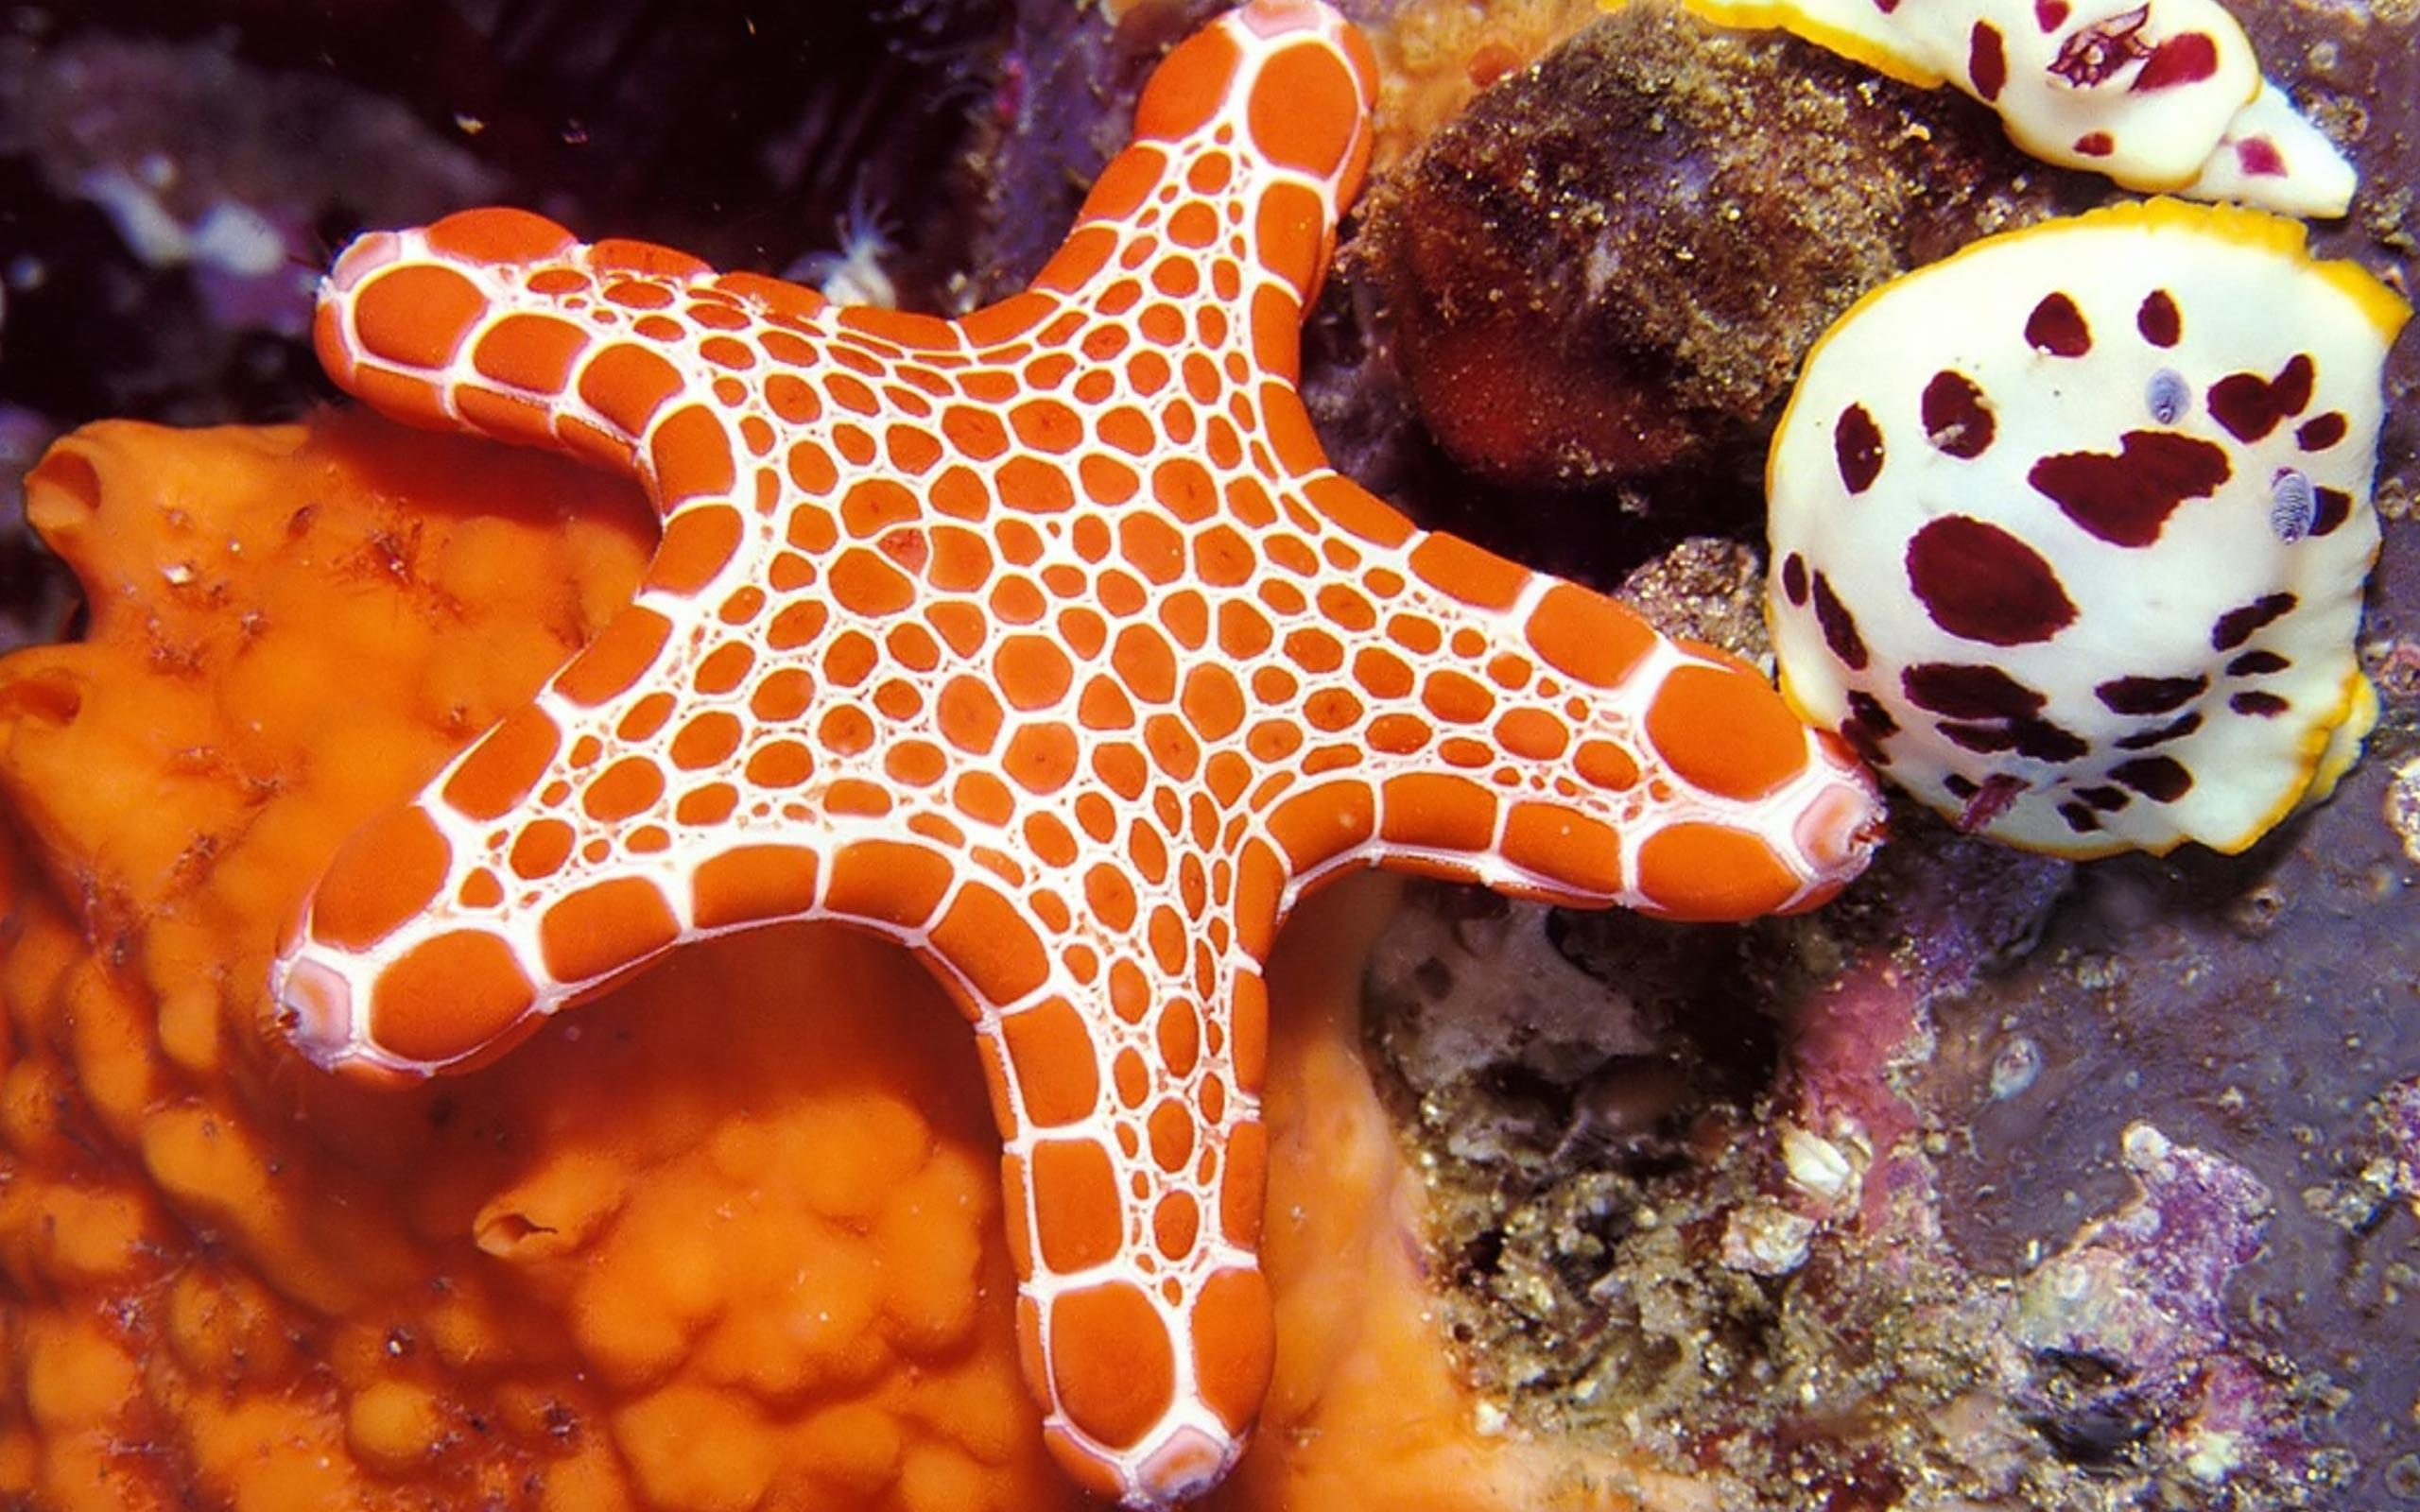 sea stars Starfish or sea stars are star-shaped echinoderms belonging to the class asteroideacommon usage frequently finds these names being also applied to ophiuroids, which are correctly referred to as brittle stars or basket stars.